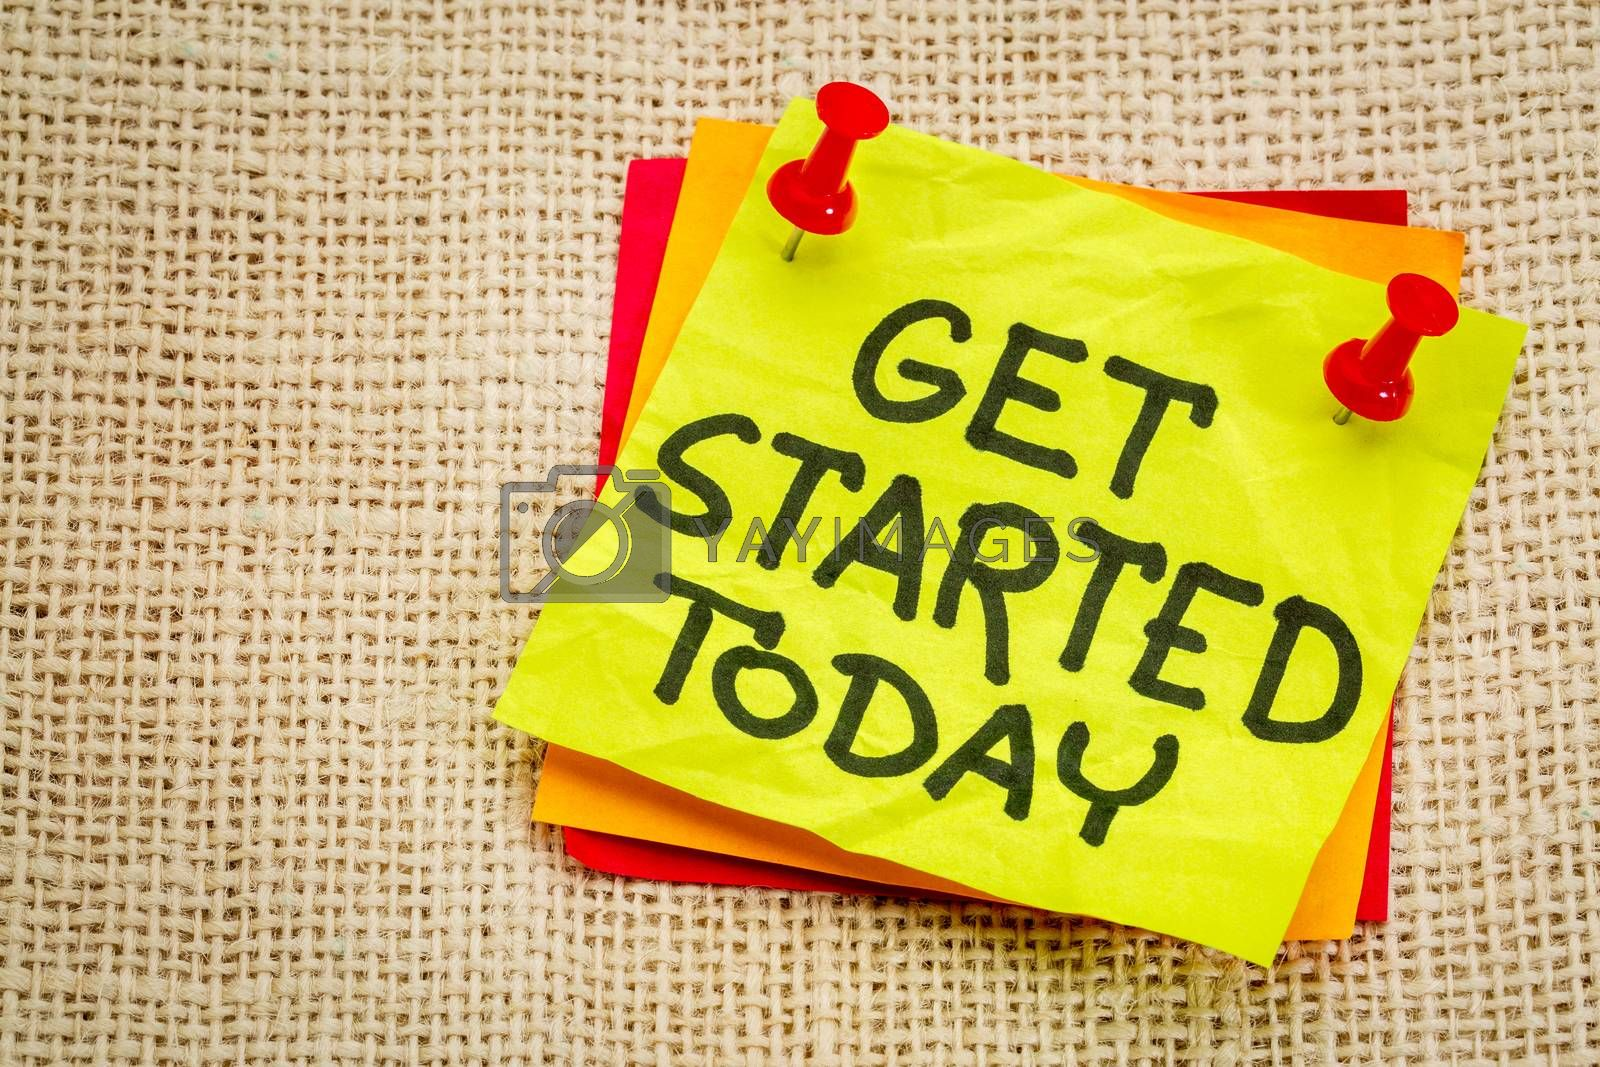 Get started today reminder - handwriting on a sticky note against burlap canvas